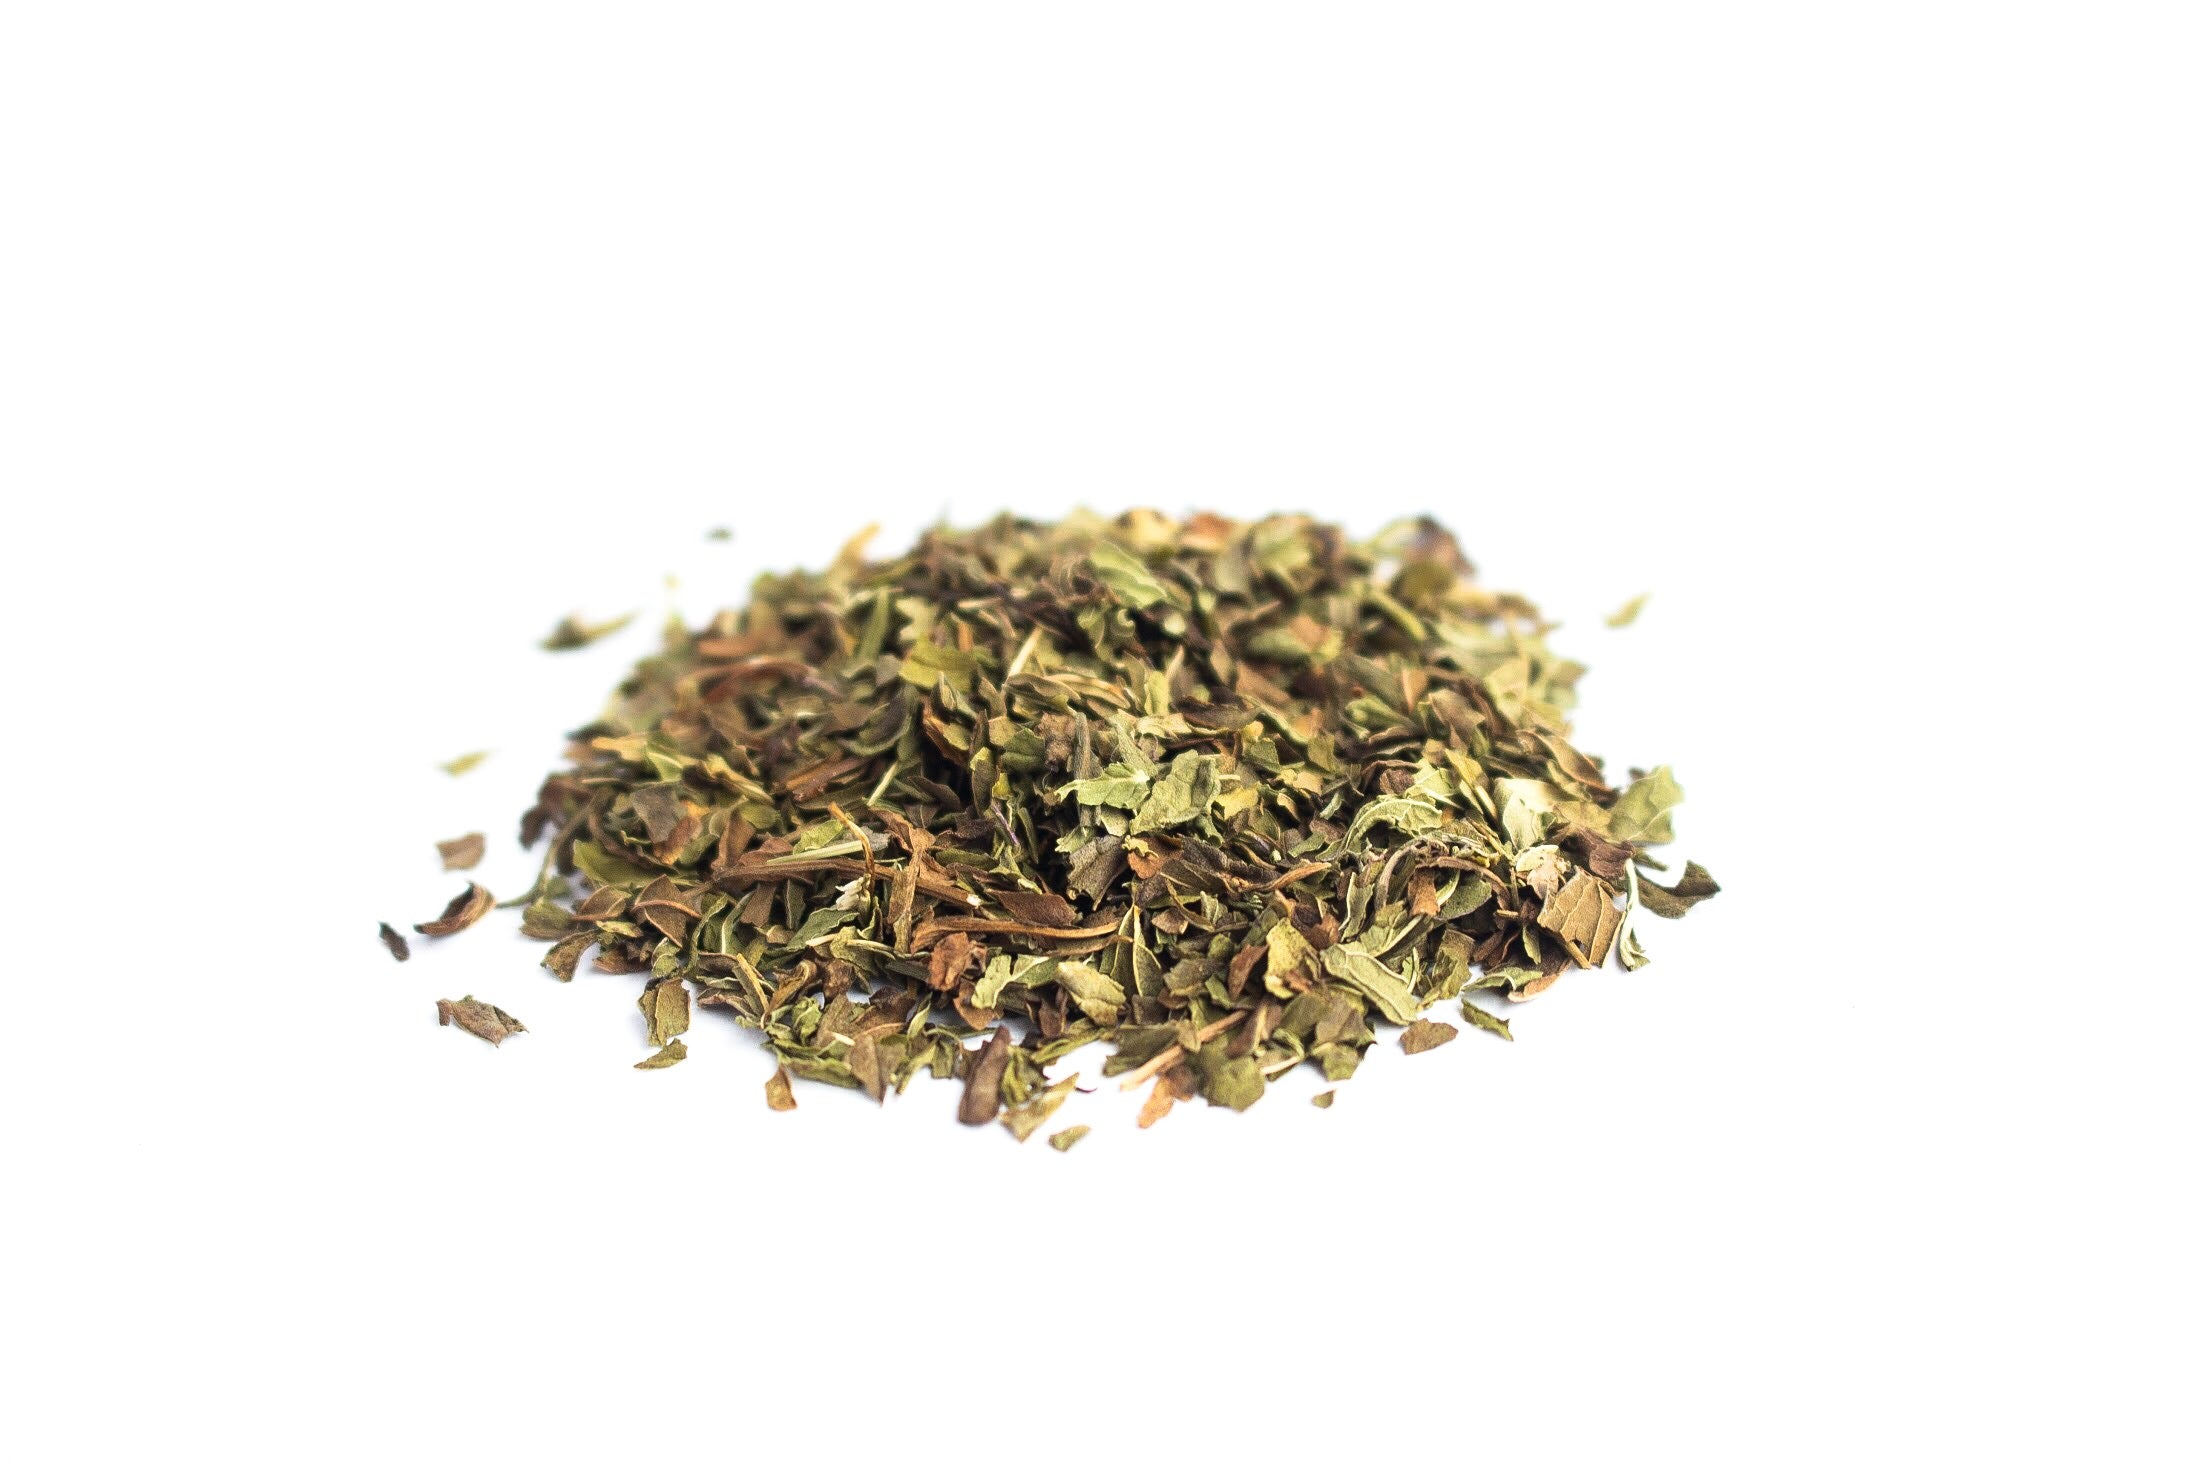 A picture of Ivy's Tea Co.'s C.R.E.A.M. tea